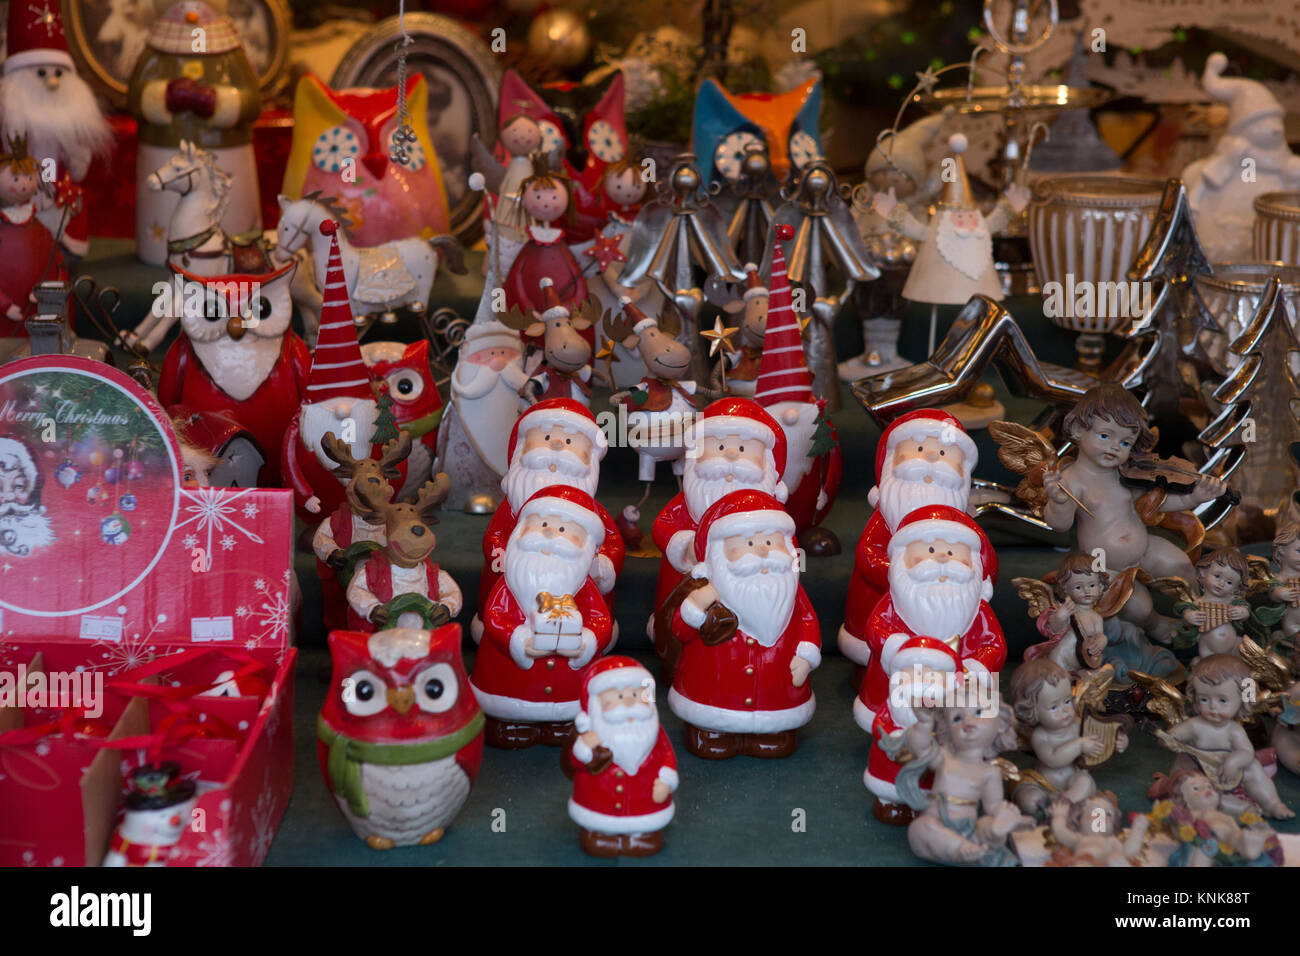 The Christmas Clause.A Stall Sells Little Figurines Of Santa Clause And Angels